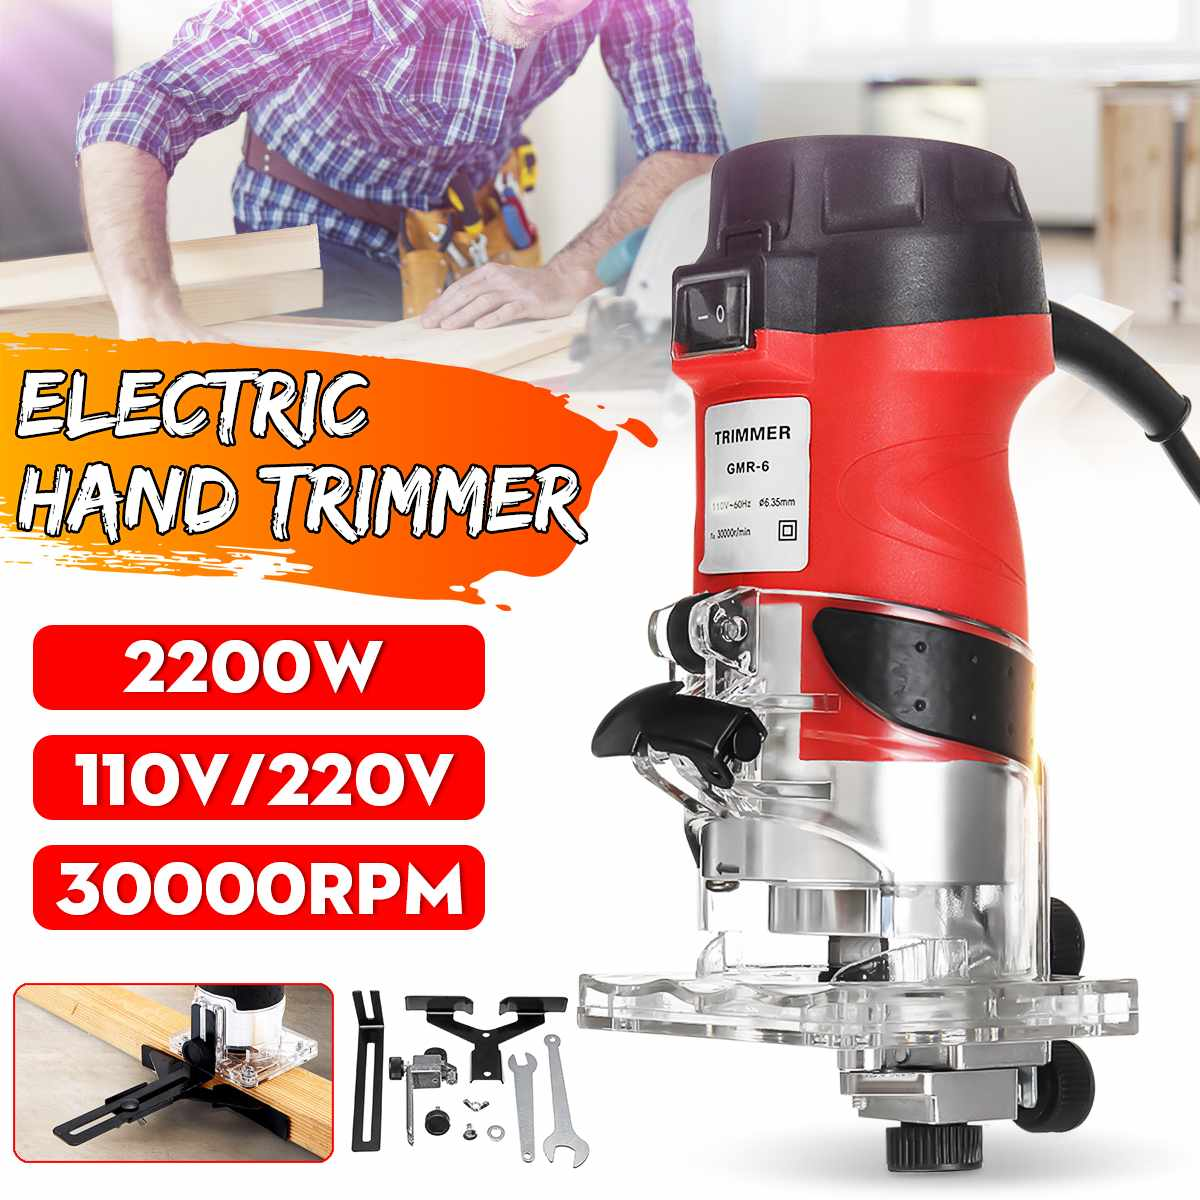 220V/110V Electric Hand Trimmer 1/4inch Wood Laminator Router Trimming Carving Milling Machine DIY Wood Woodworking Power Tools